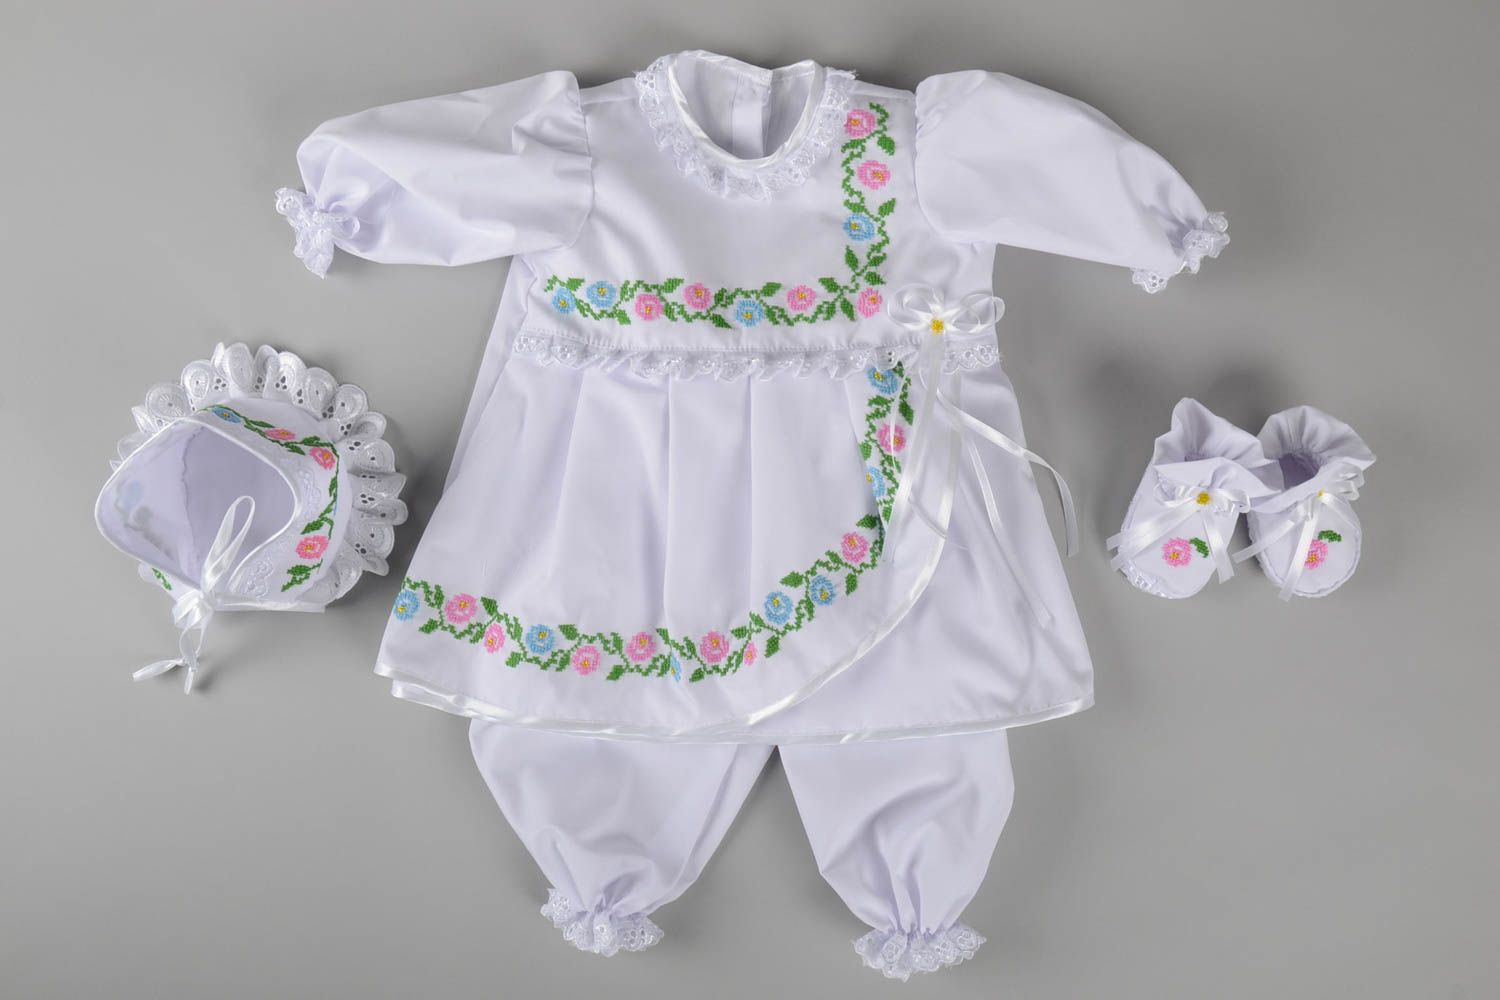 be7d11aed Notice: Undefined variable: cat in /home/newmadeheart/prod/cache/. Vestido  para bautizo hecho a mano ...